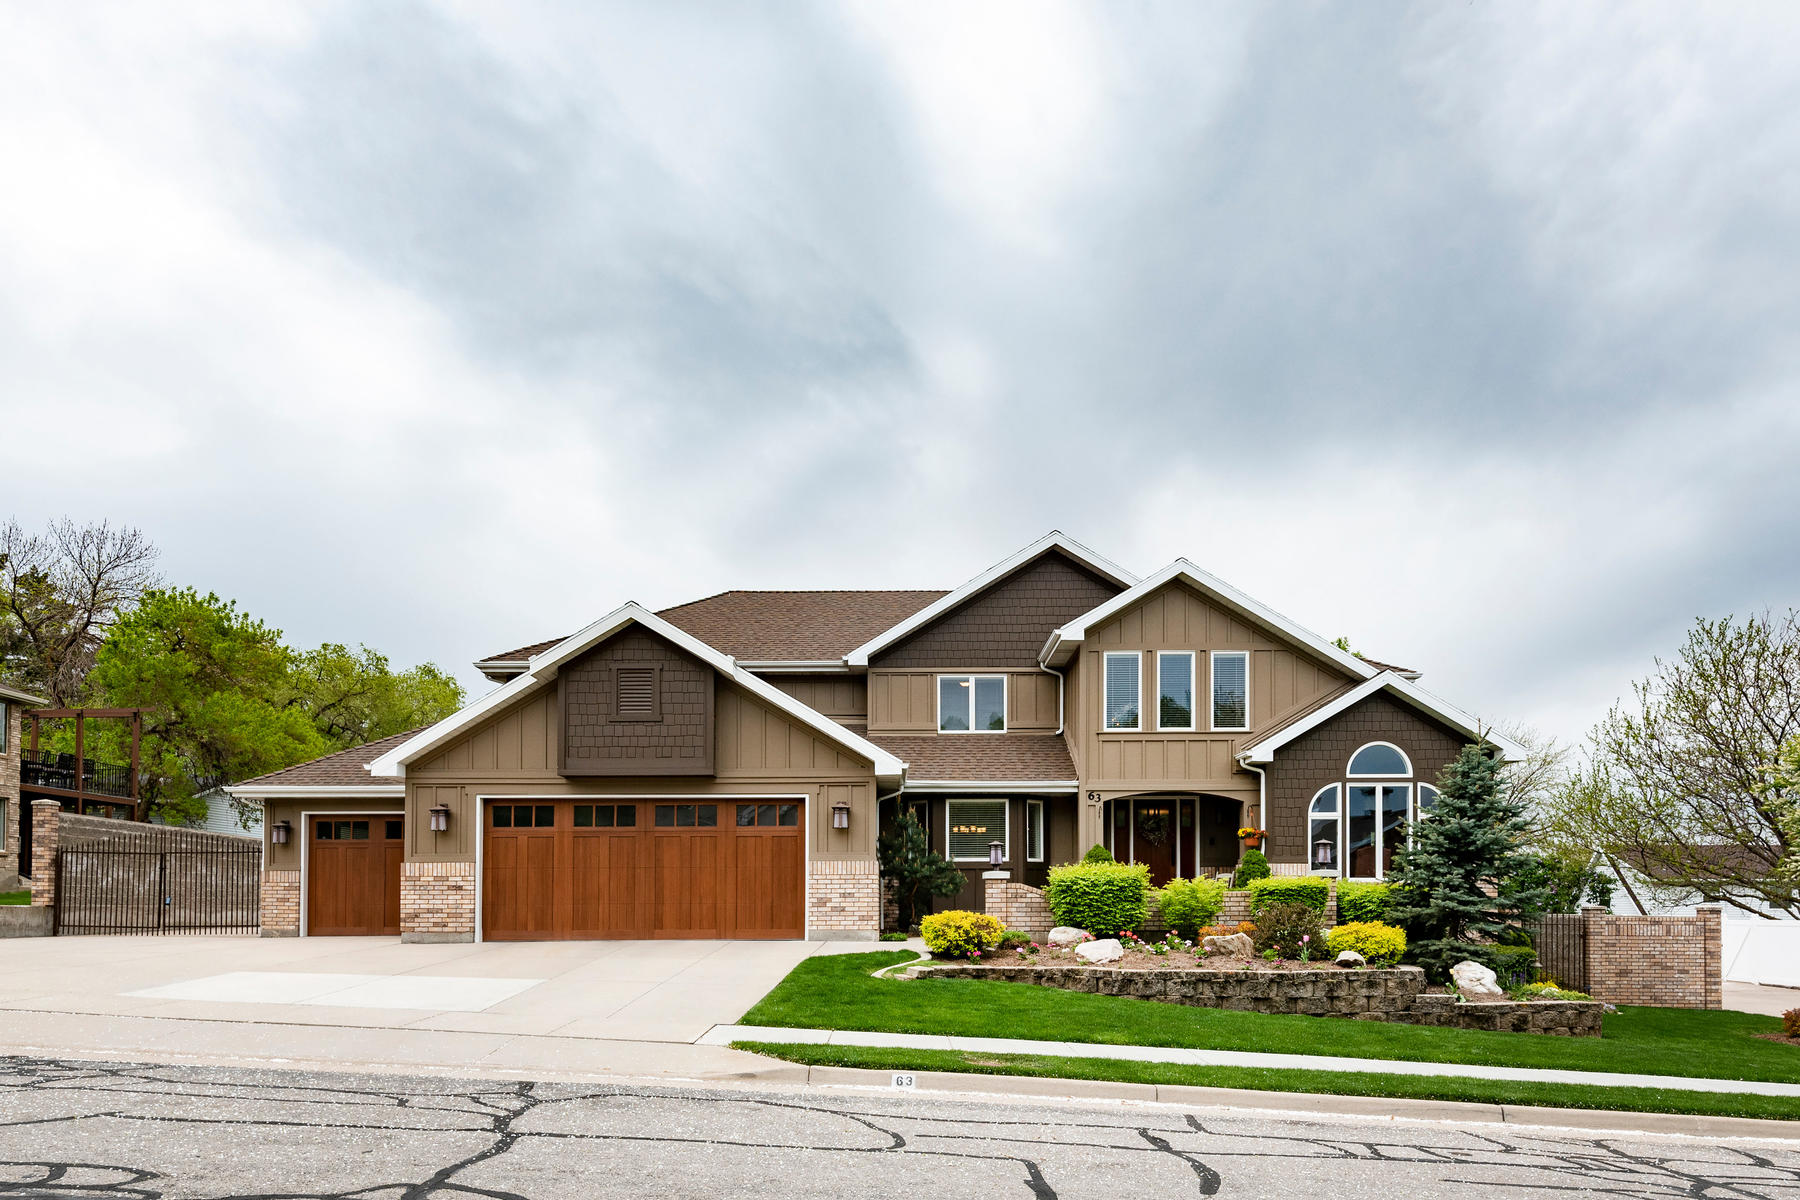 Single Family Homes for Active at Custom Home on Private Oasis 63 West 1750 North Centerville, Utah 84014 United States